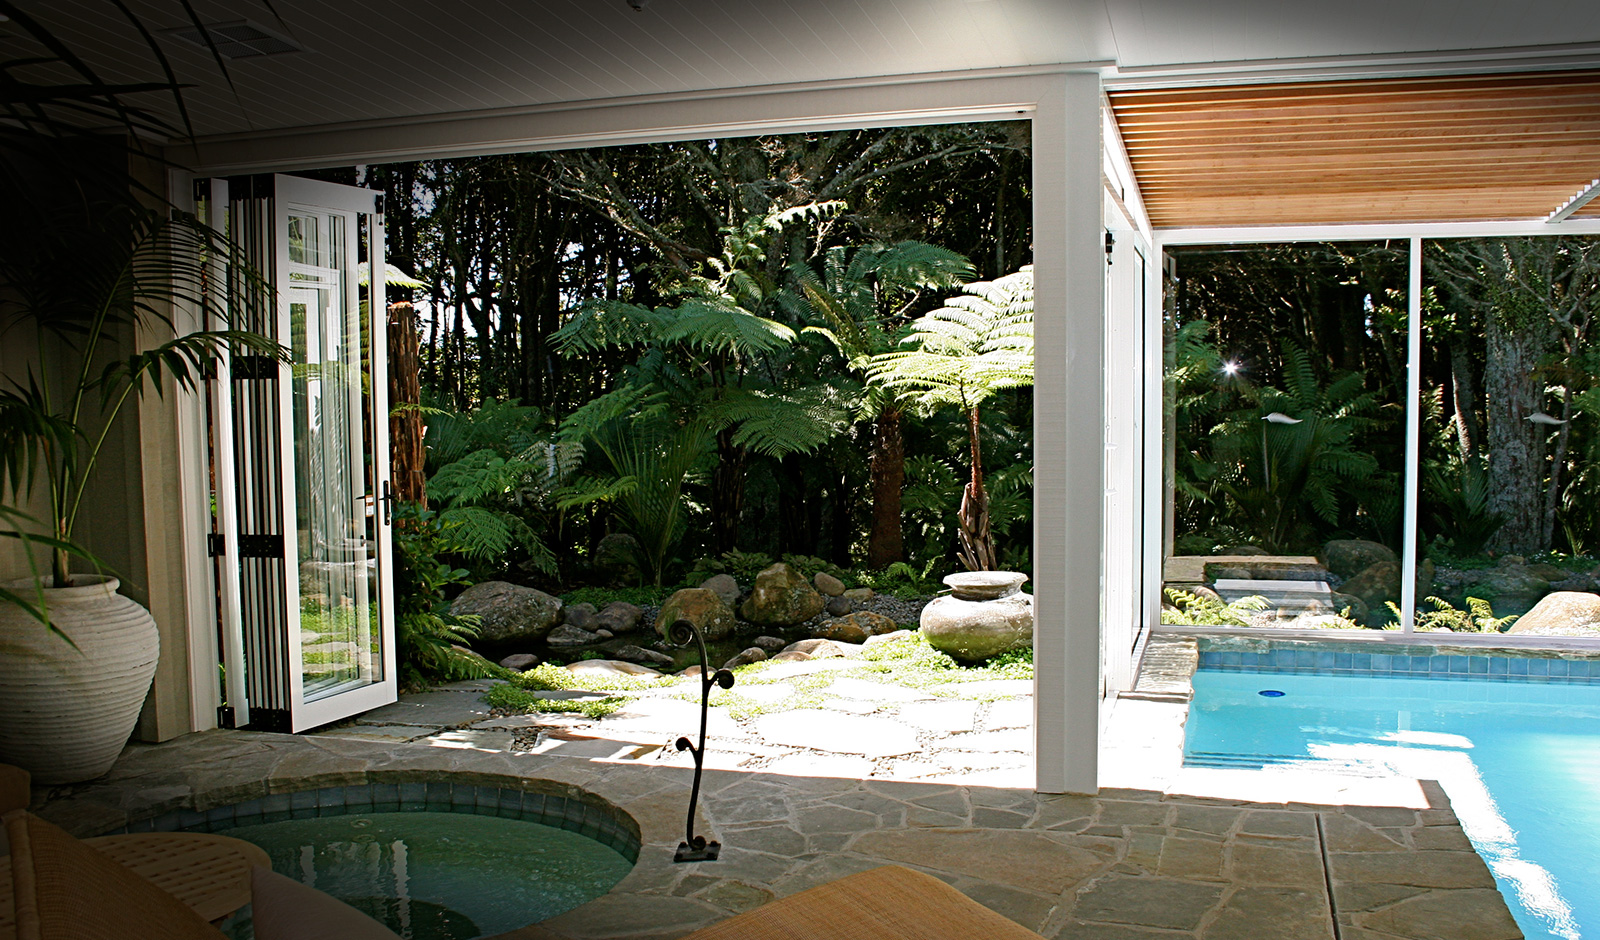 Kauri Cliffs Spa - Landscaping by Hawthorn Landscapes Kerikeri